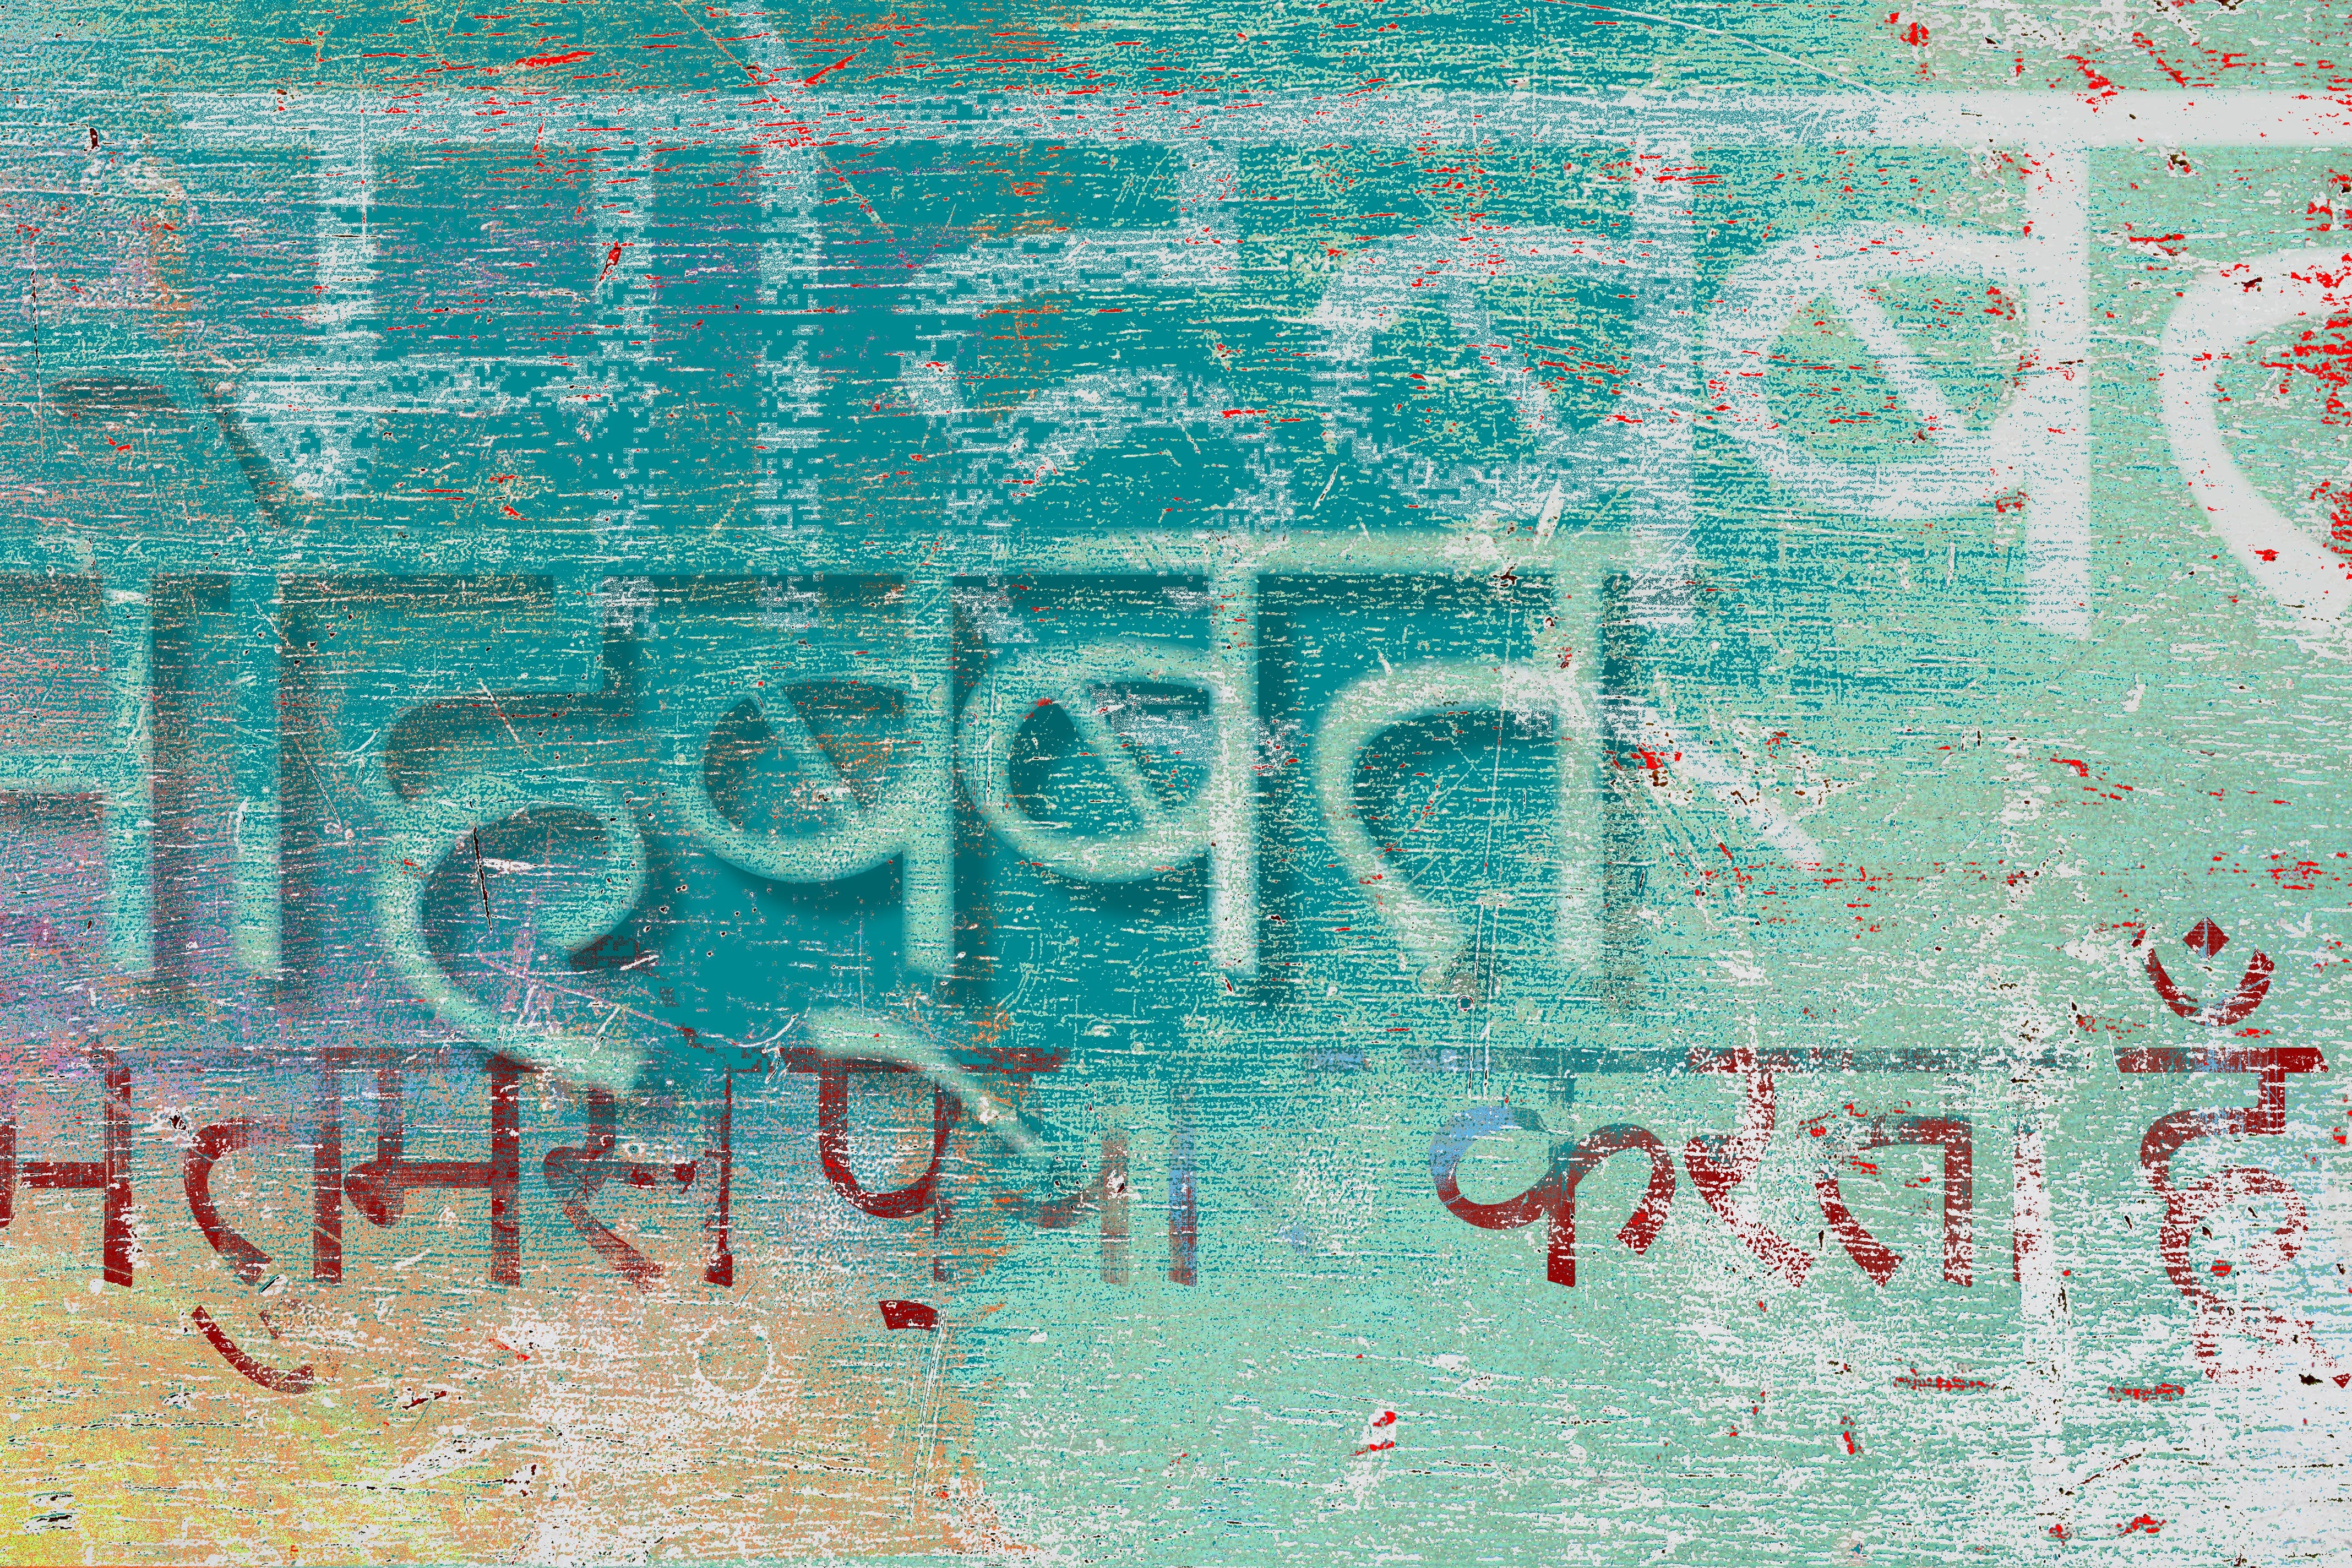 Close-up of Text Written on Wall